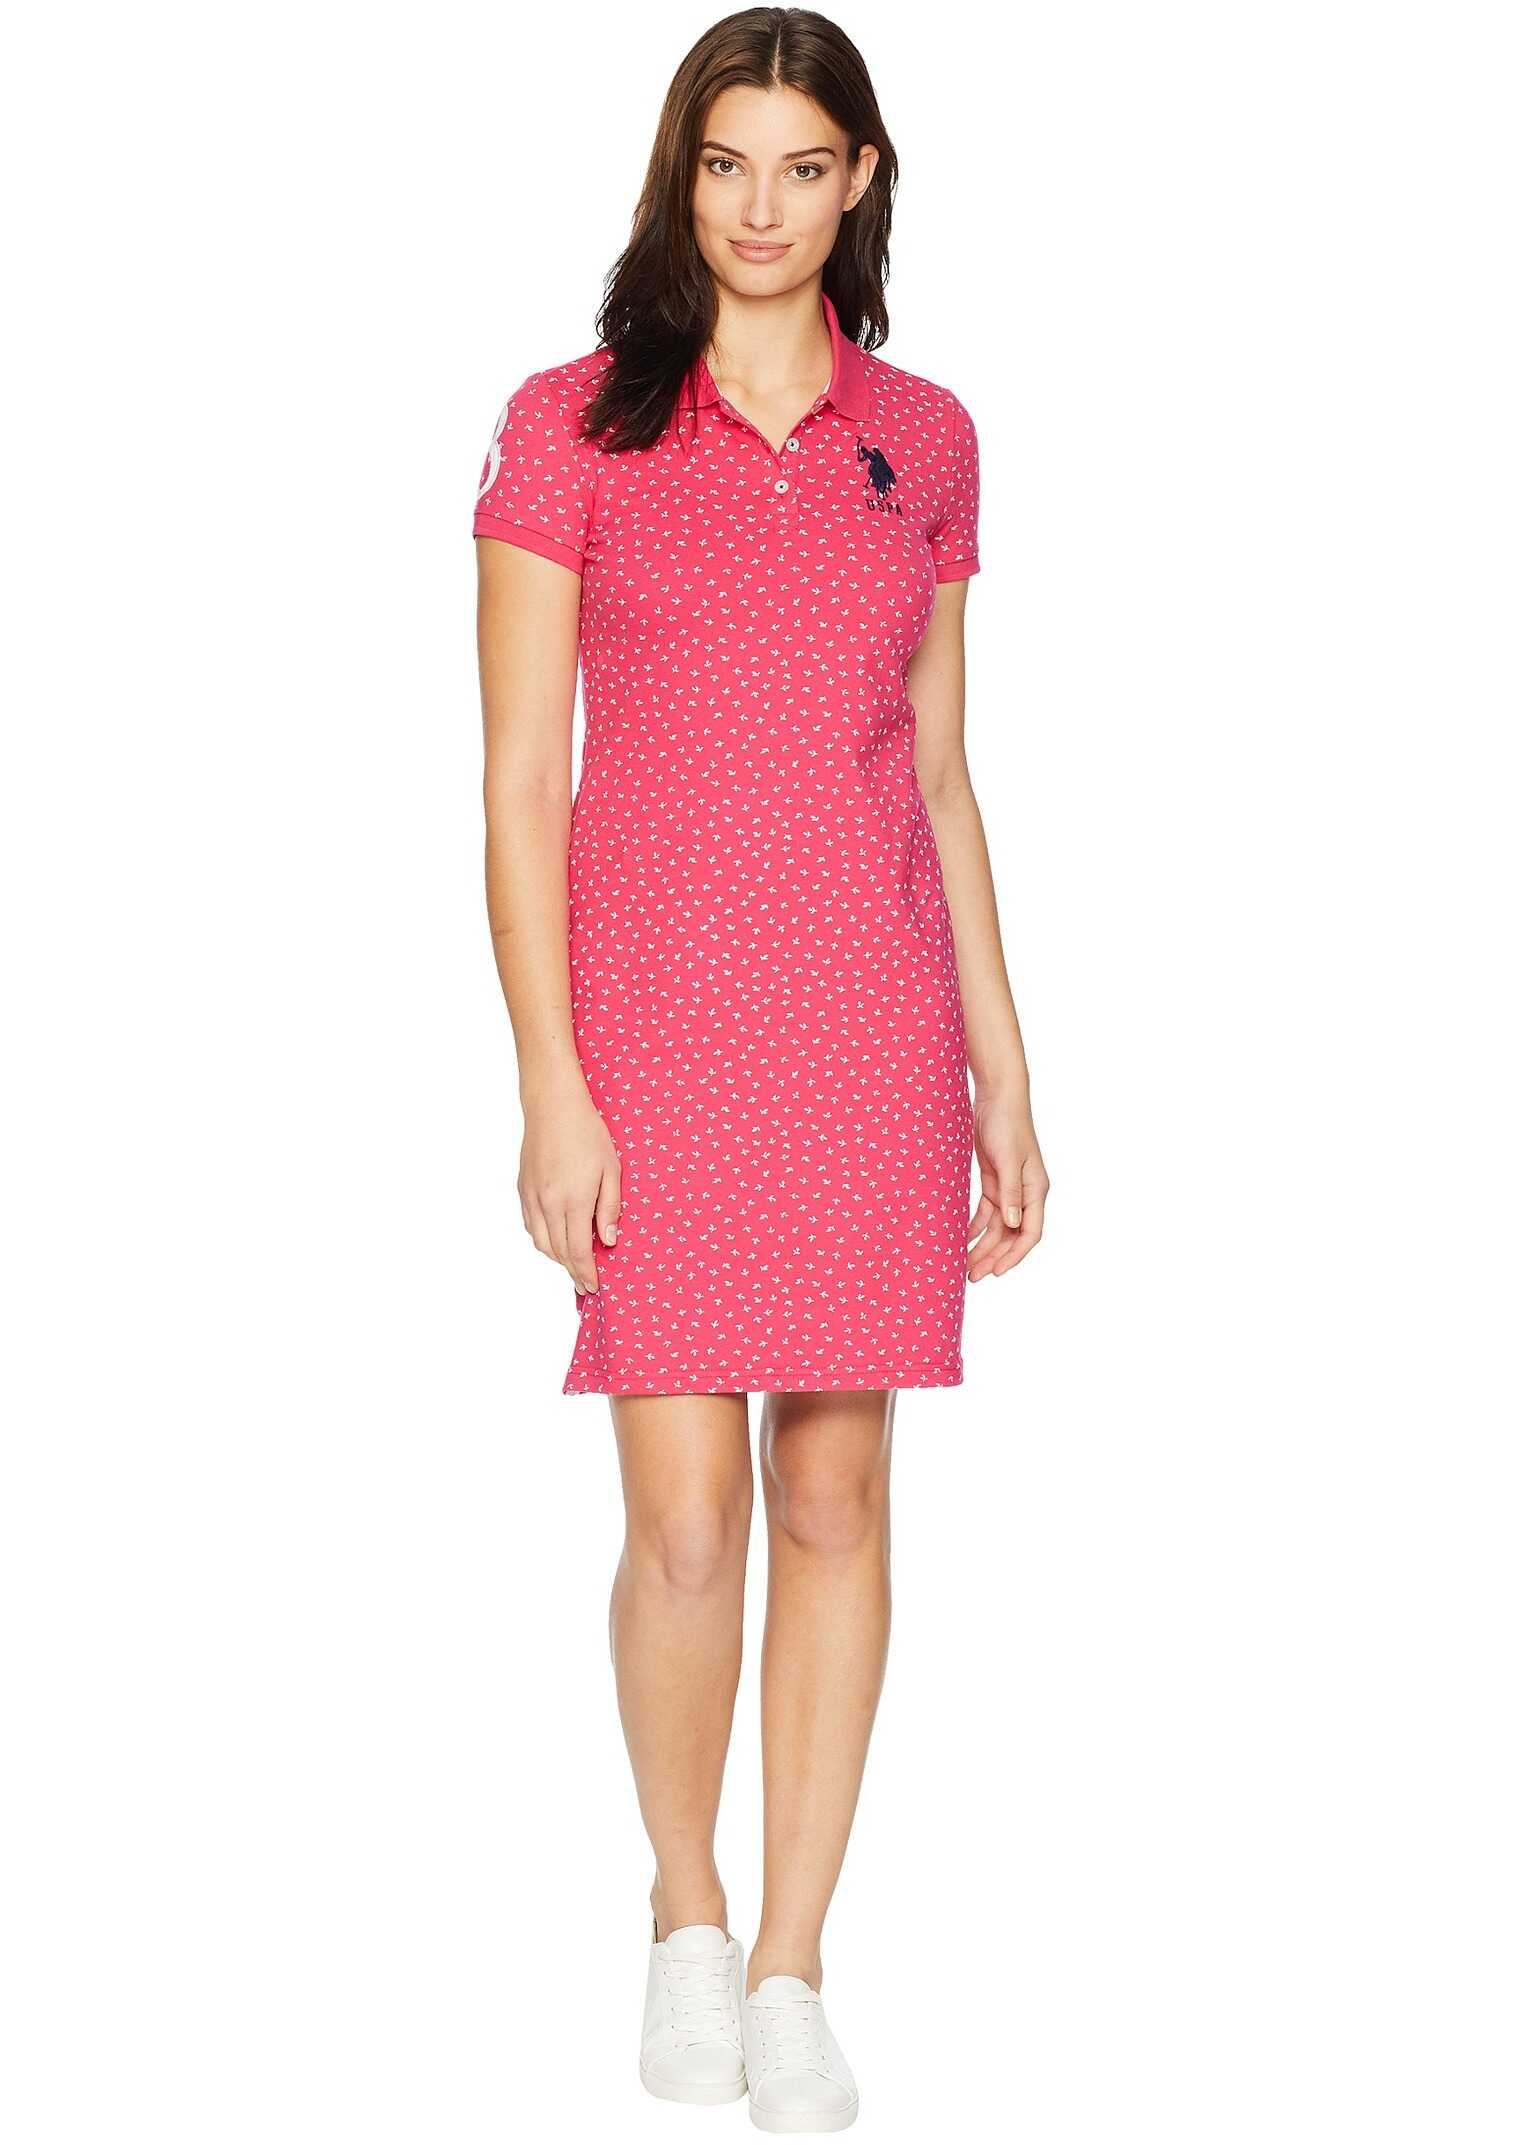 U.S. POLO ASSN. Leaf Bud Print Polo Dress Bright Rose